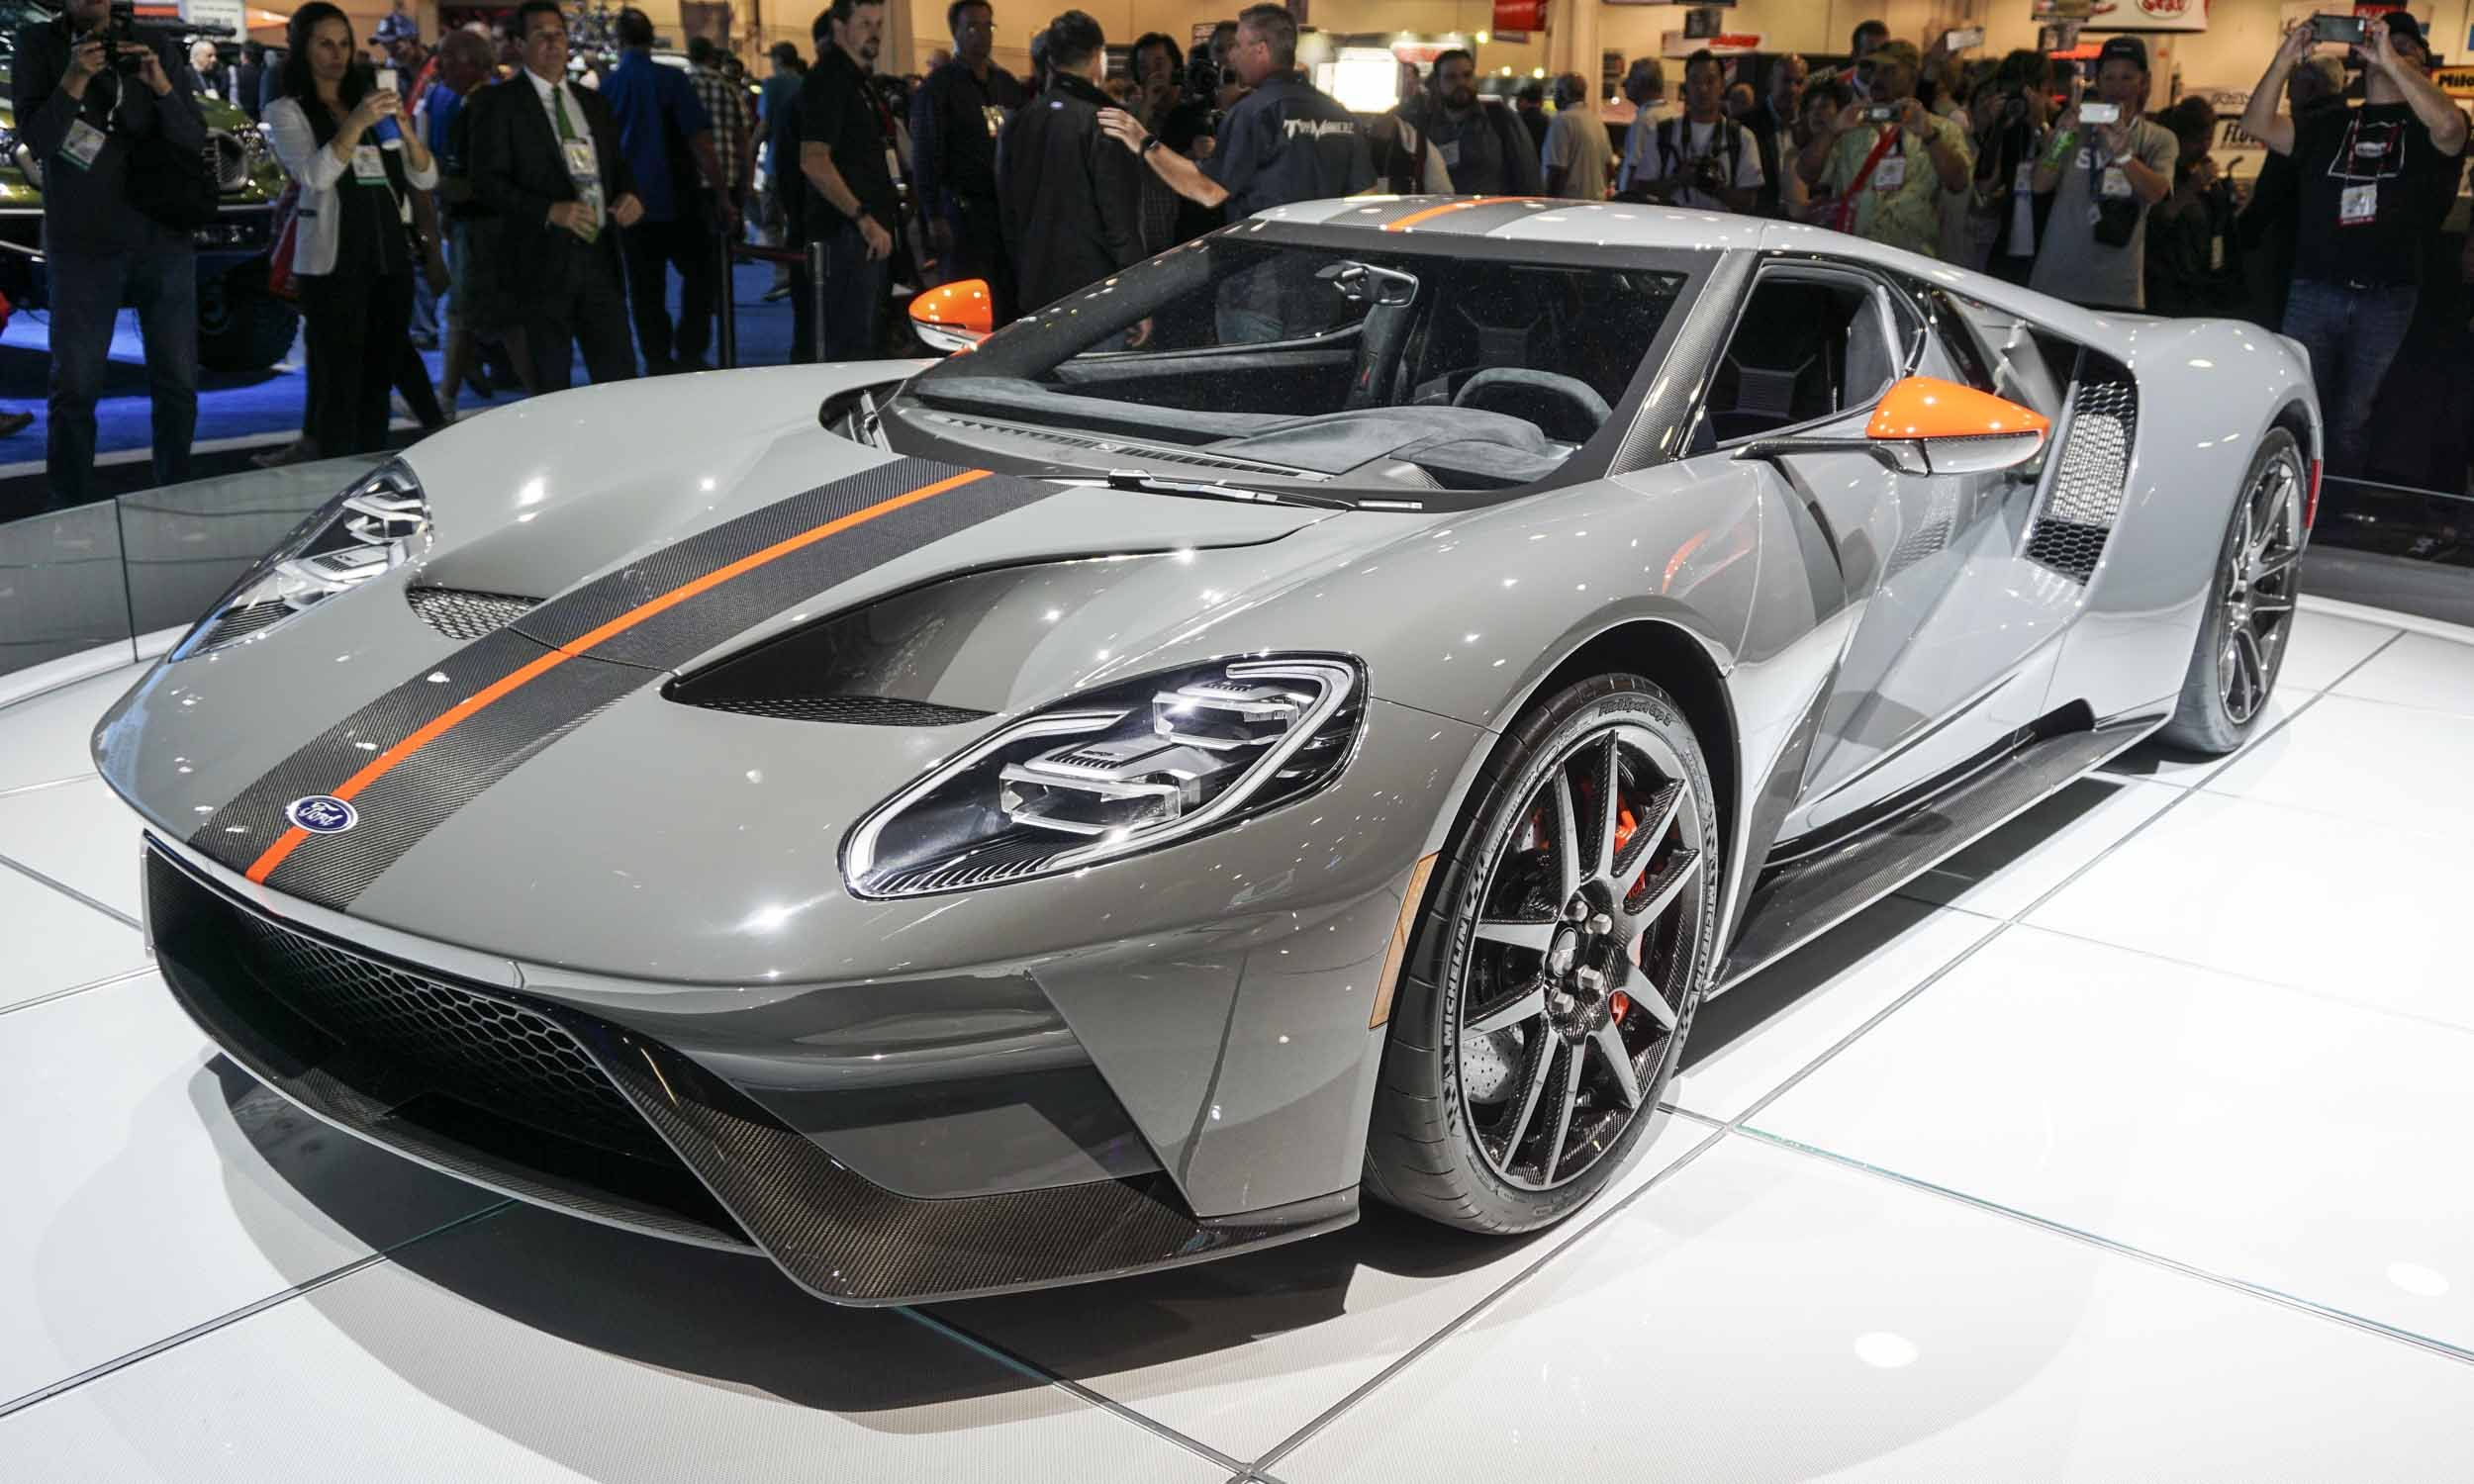 What Are The Best Car Waxes Top 5 You Need To Know Boost And Camber In 2020 Ford Gt 2019 Ford Car Wax